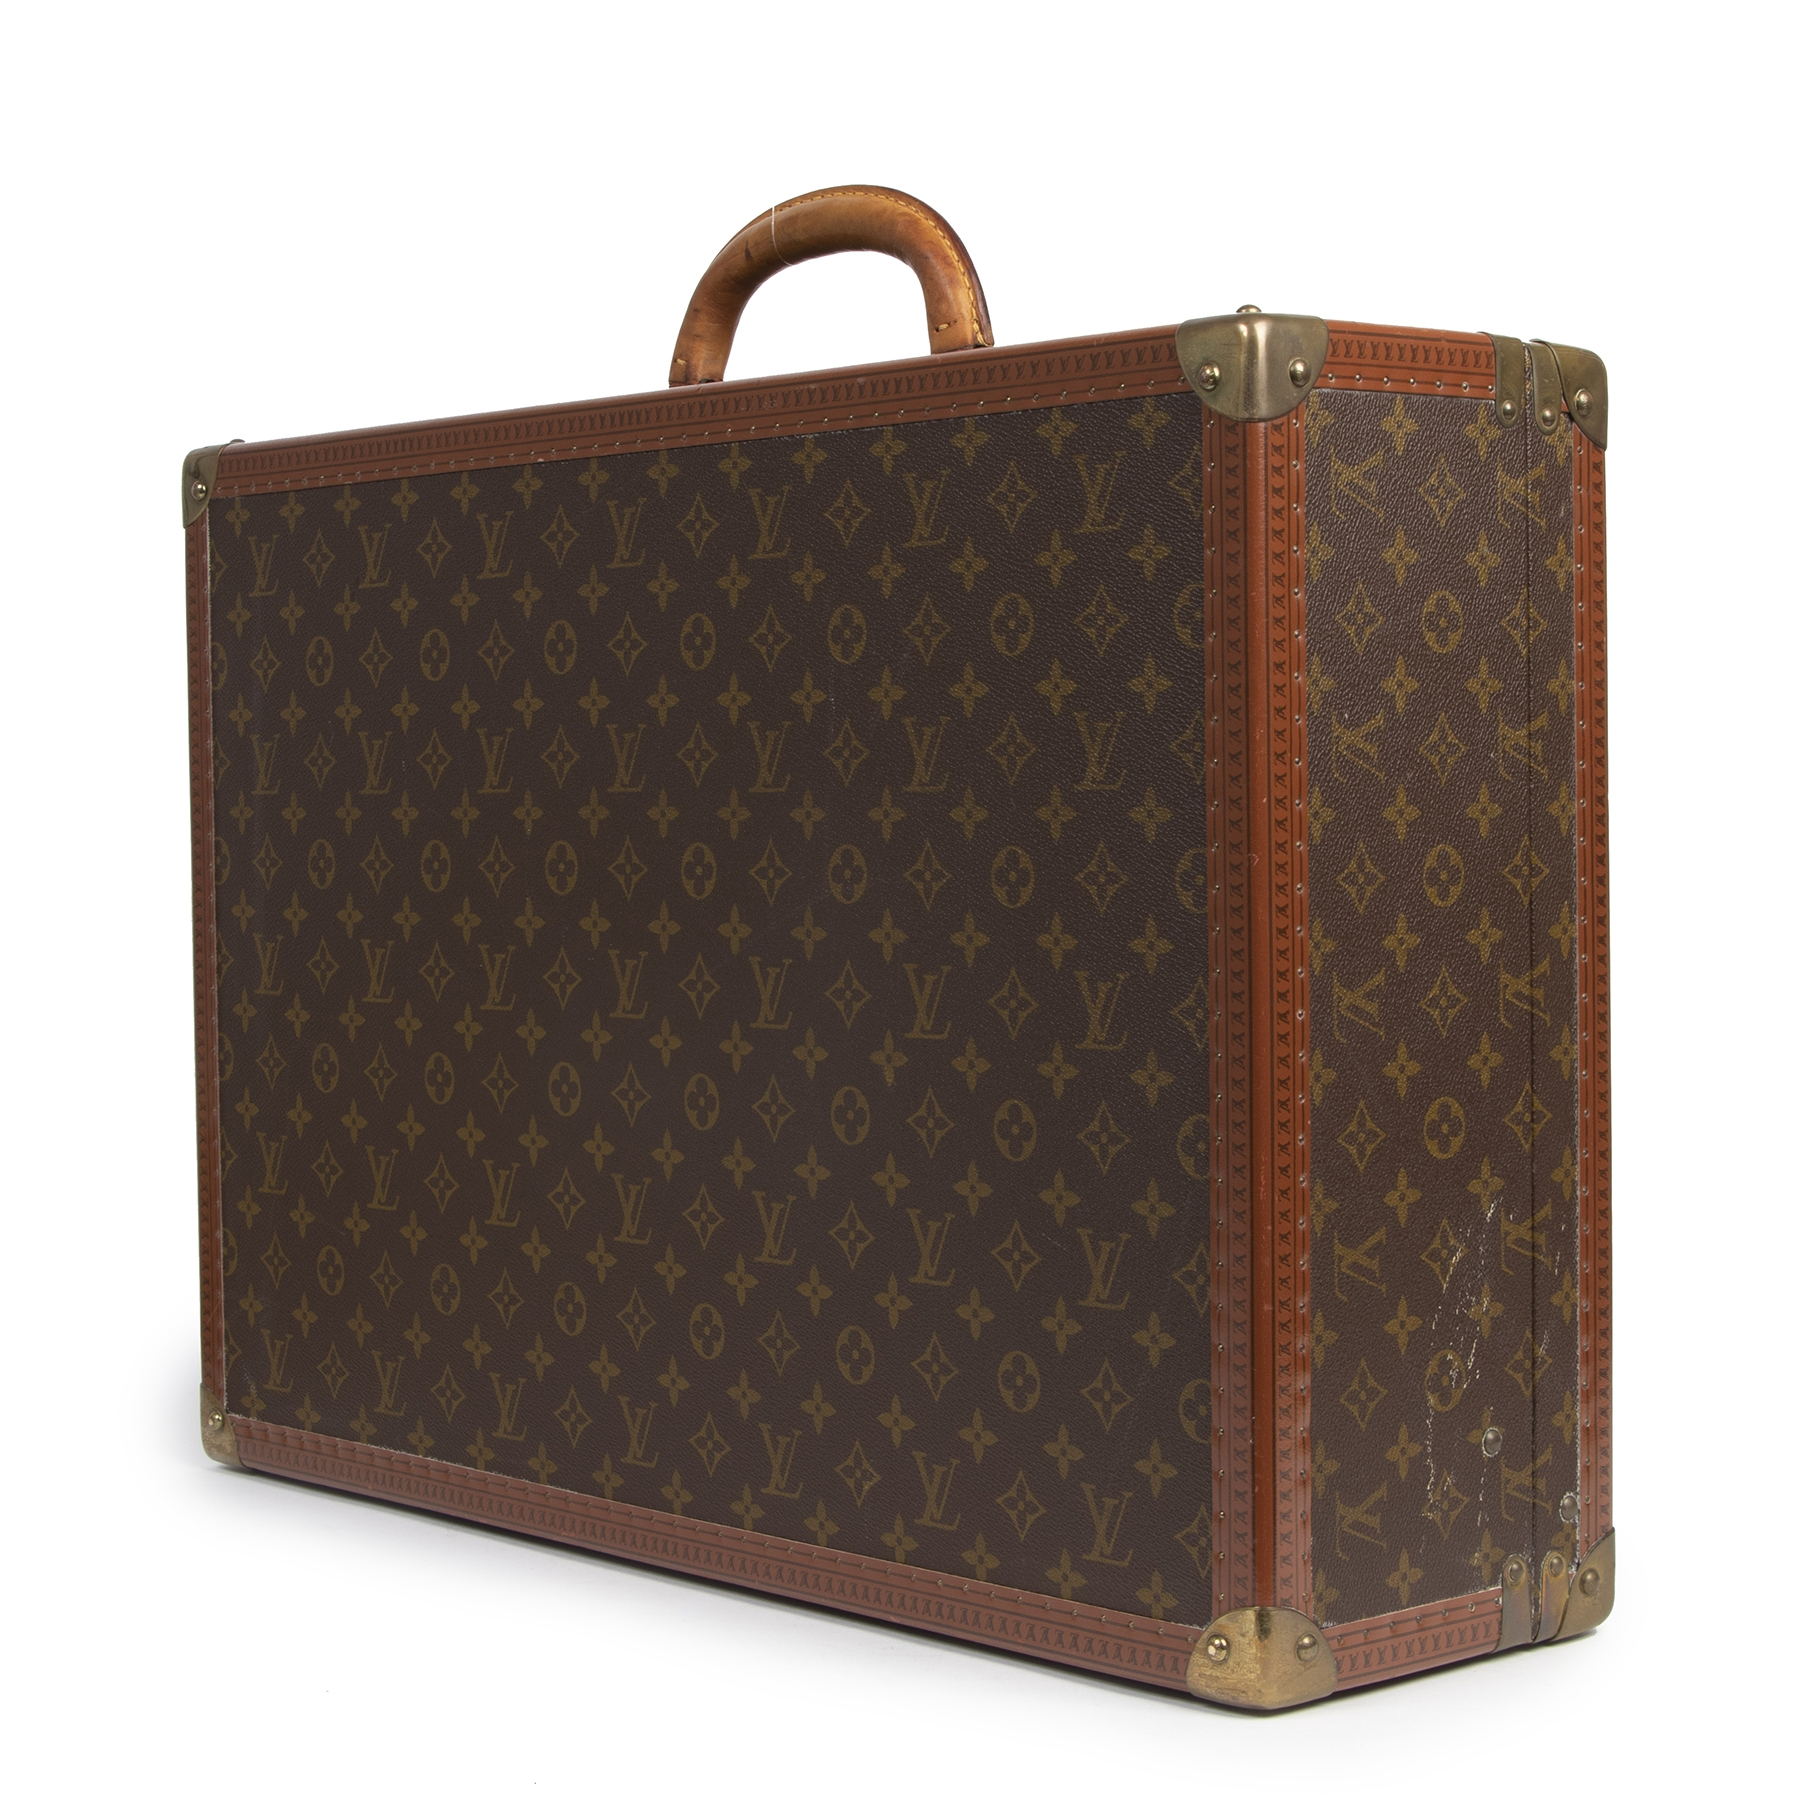 Authentic second-hand vintage Louis Vuitton Bisten 60 Monogram Travel Trunk buy online webshop LabelLOV